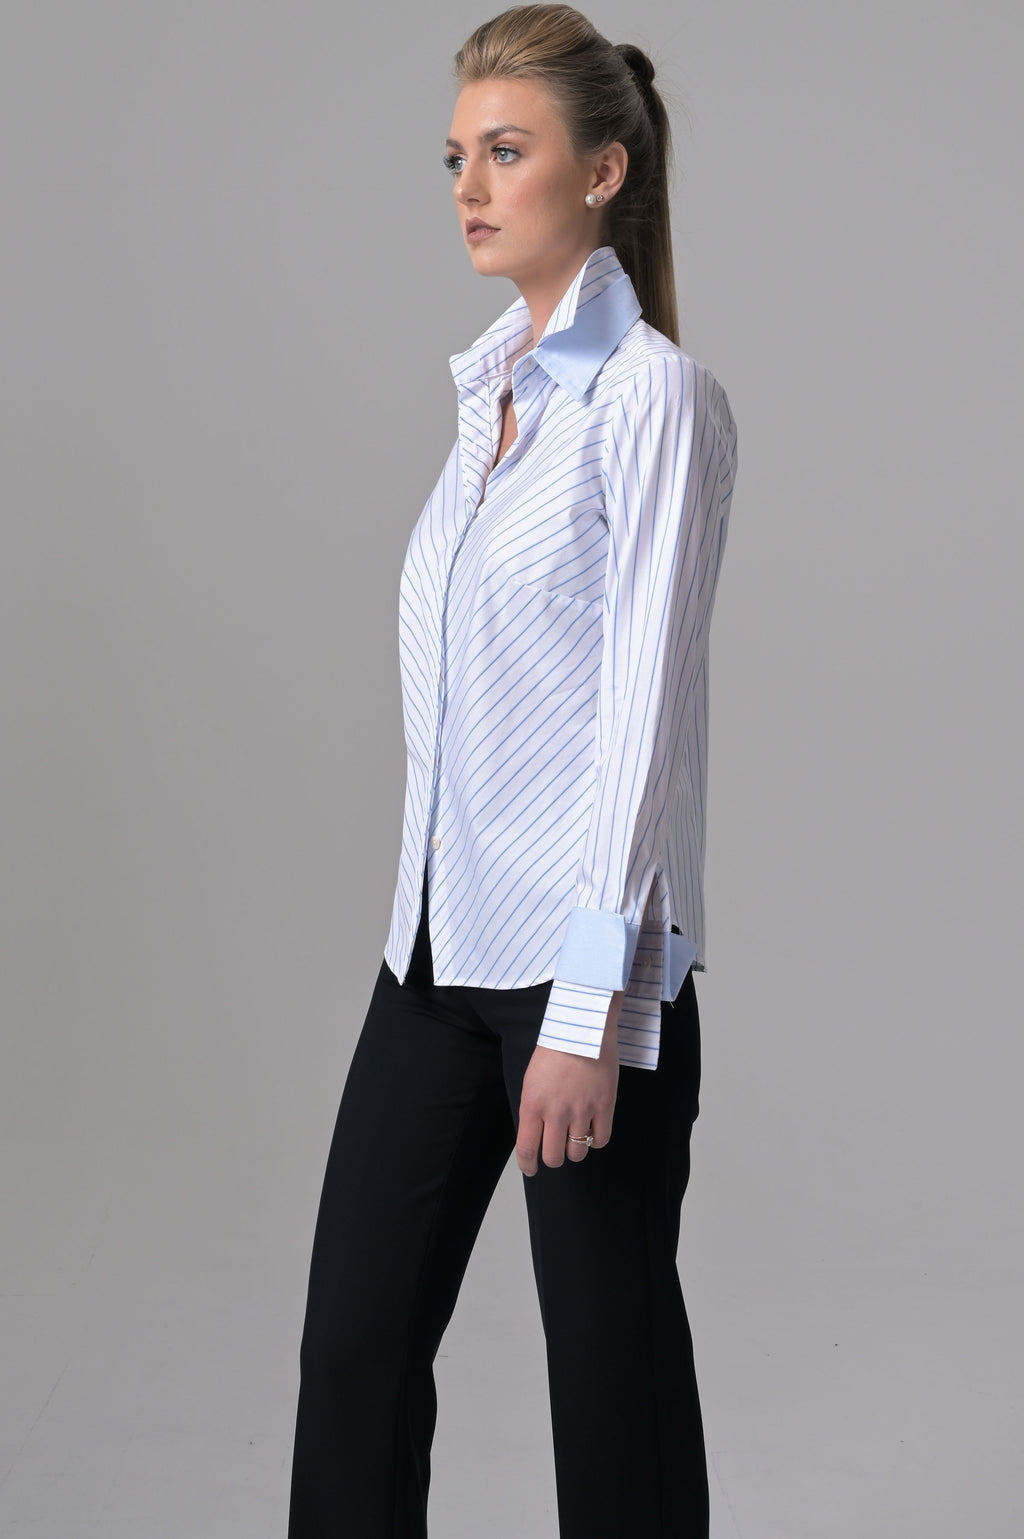 White with Light Blue Stripes Shirt